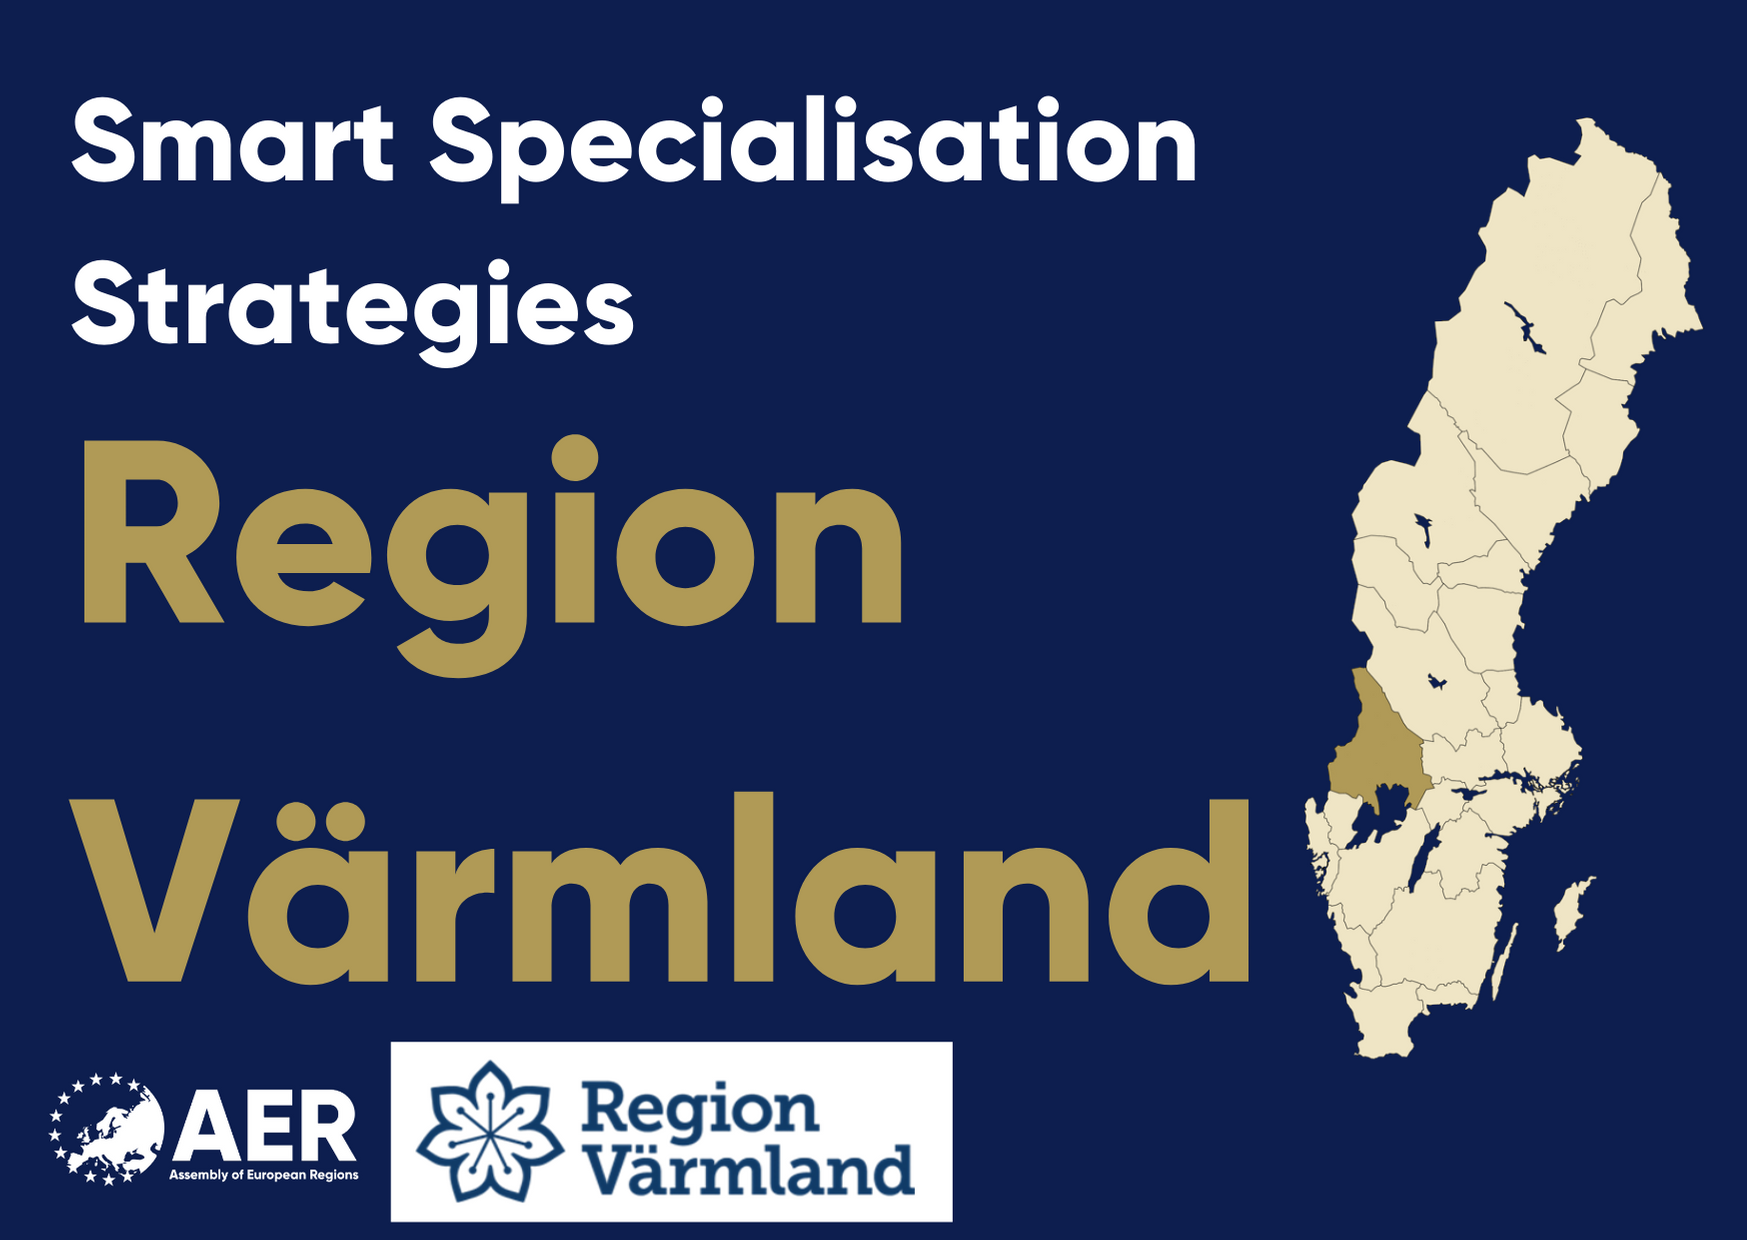 Territorial Approach to Smart Specialisation: Experience from Värmland